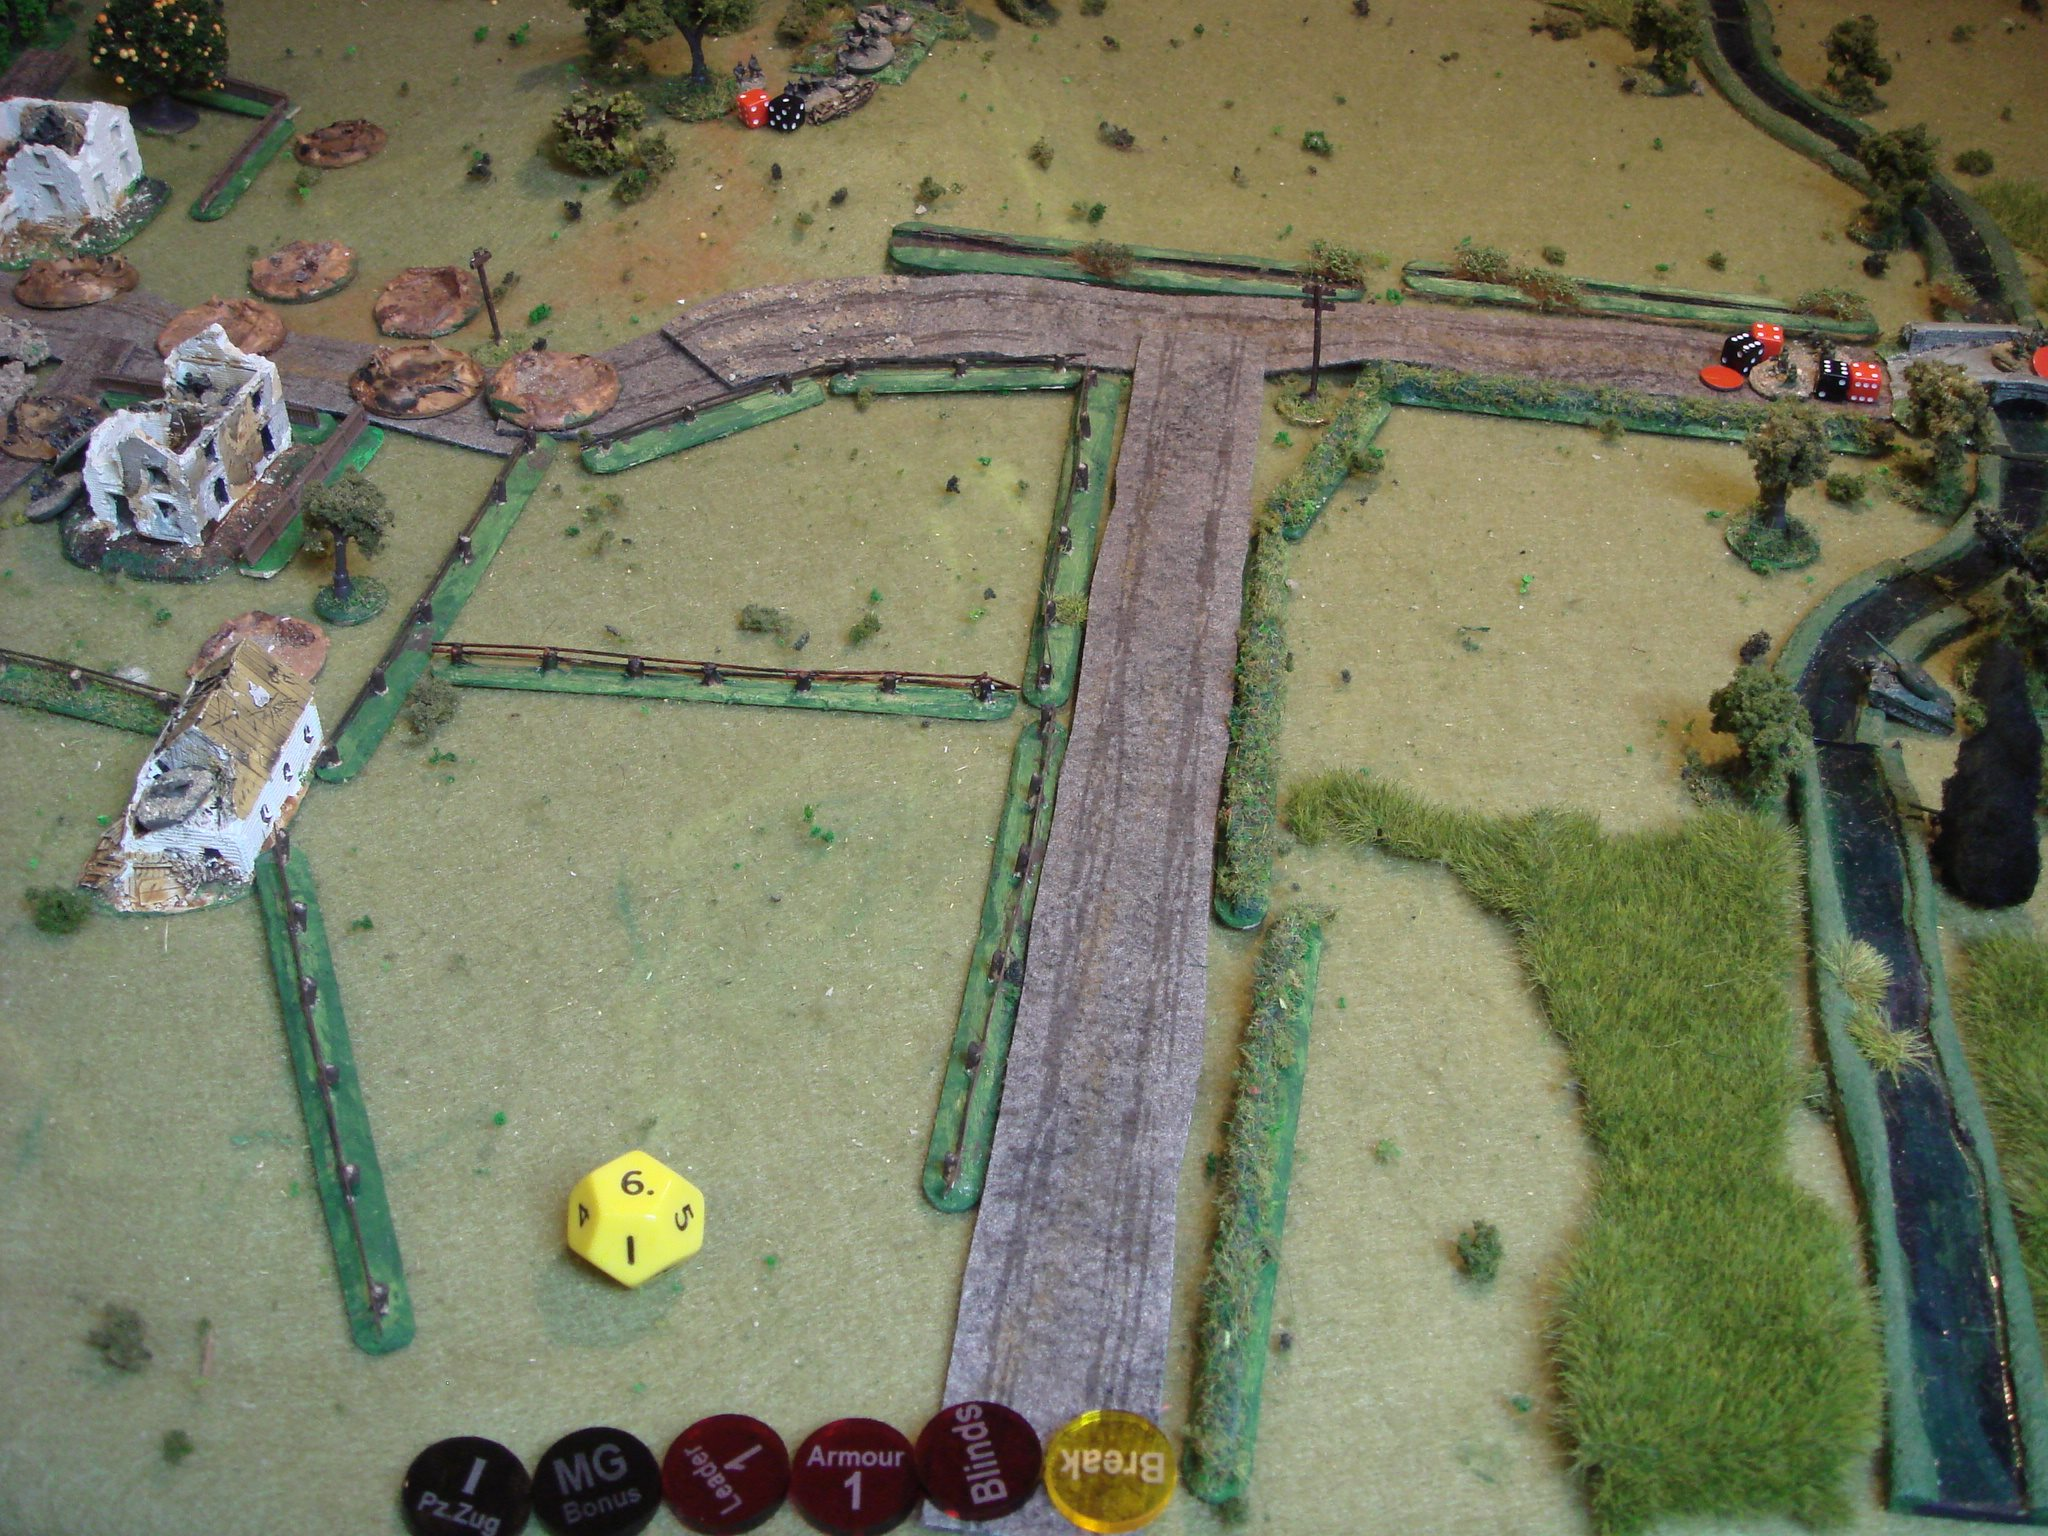 The MMG at the top opens fire on the Soviet platoon crossing the bridge. At Close Range it is murder and the lead squads on the bridge are decimated!  The Tiger has started to pick off the T-34s as they appear. Despite taking a few hits, its armour is too much for the /76s and /85s.